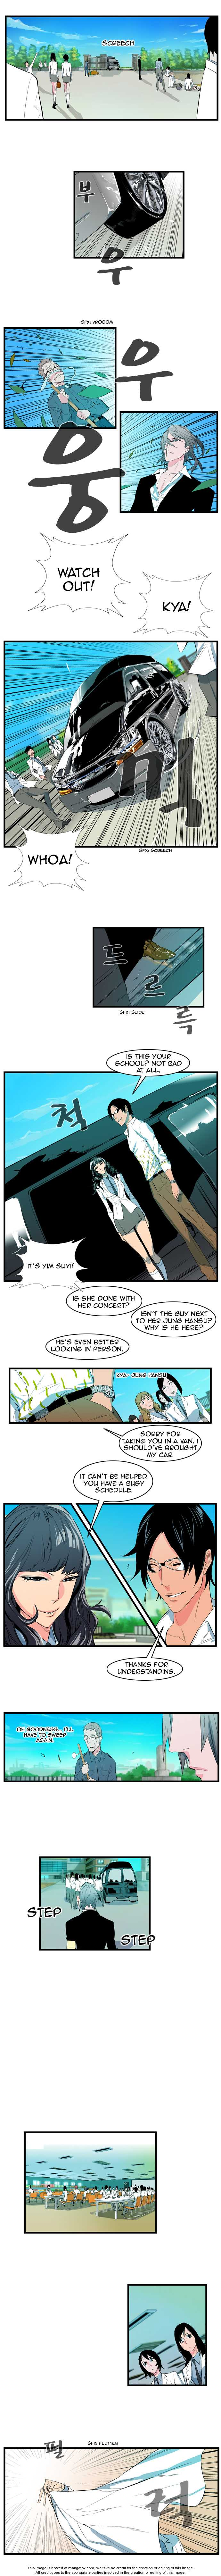 Noblesse 94 Page 2